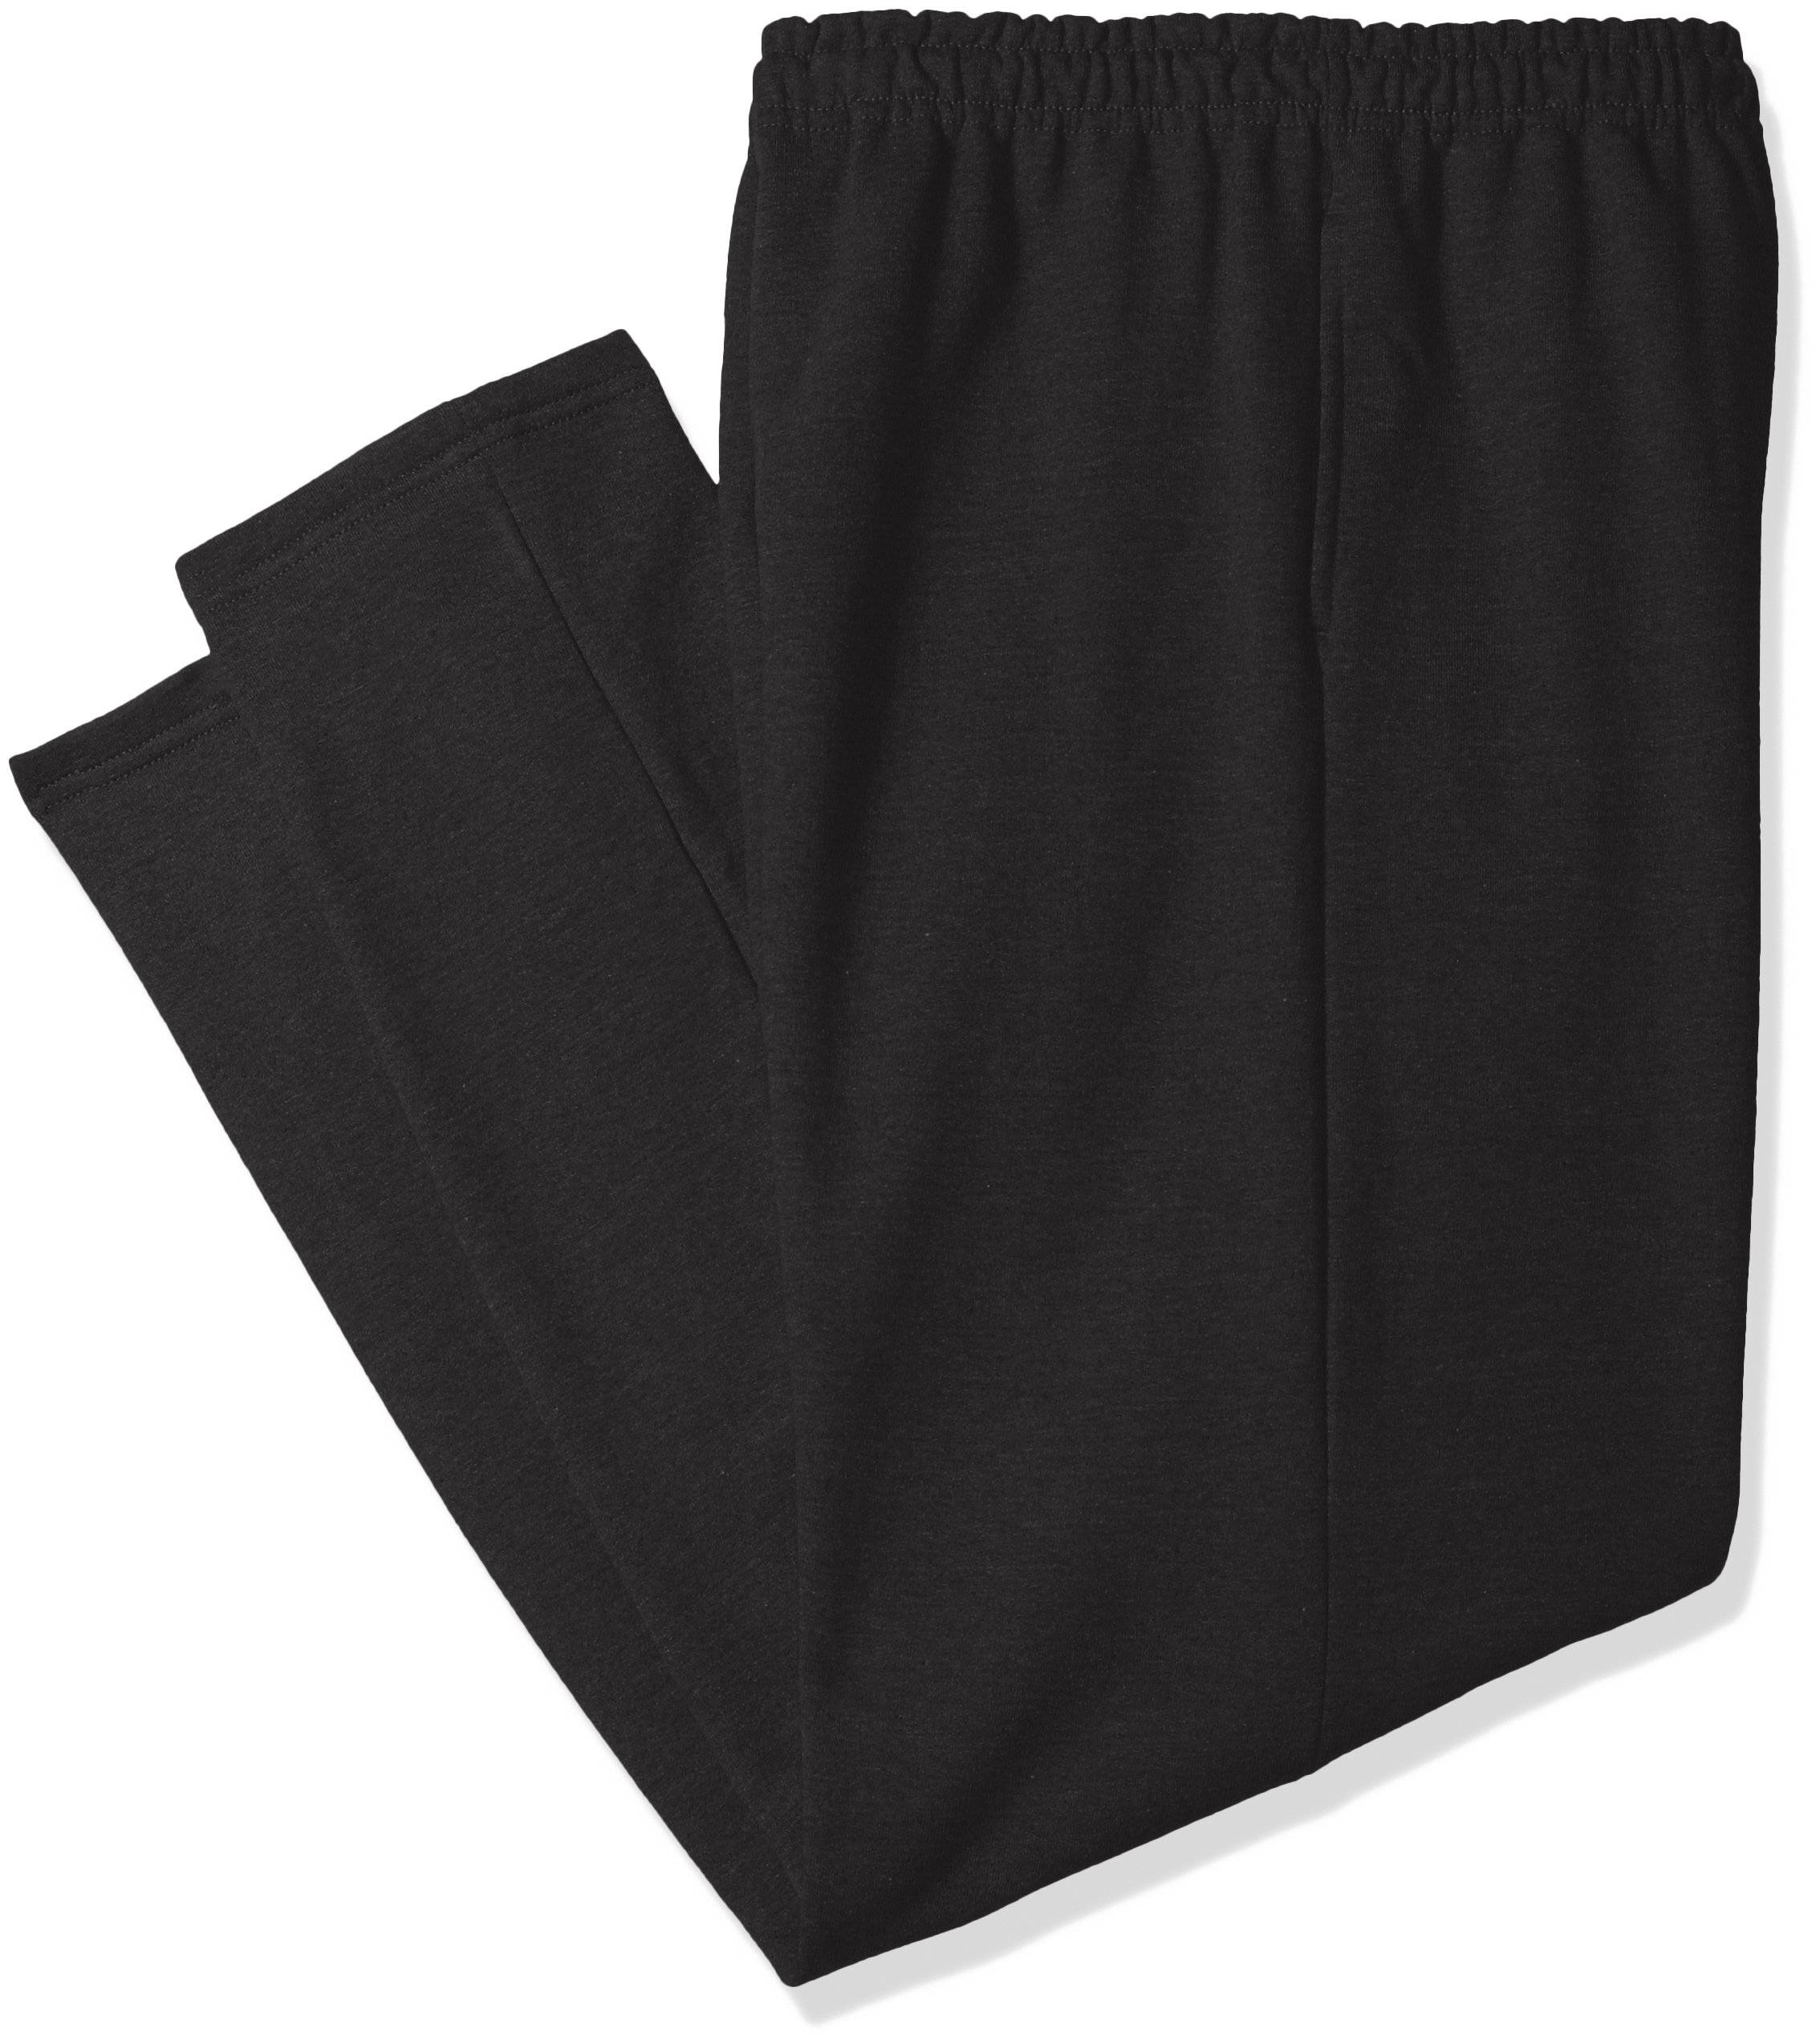 Gildan Men's Big and Tall Fleece Open Bottom Pocketed Pant, Black, XX-Large by Gildan